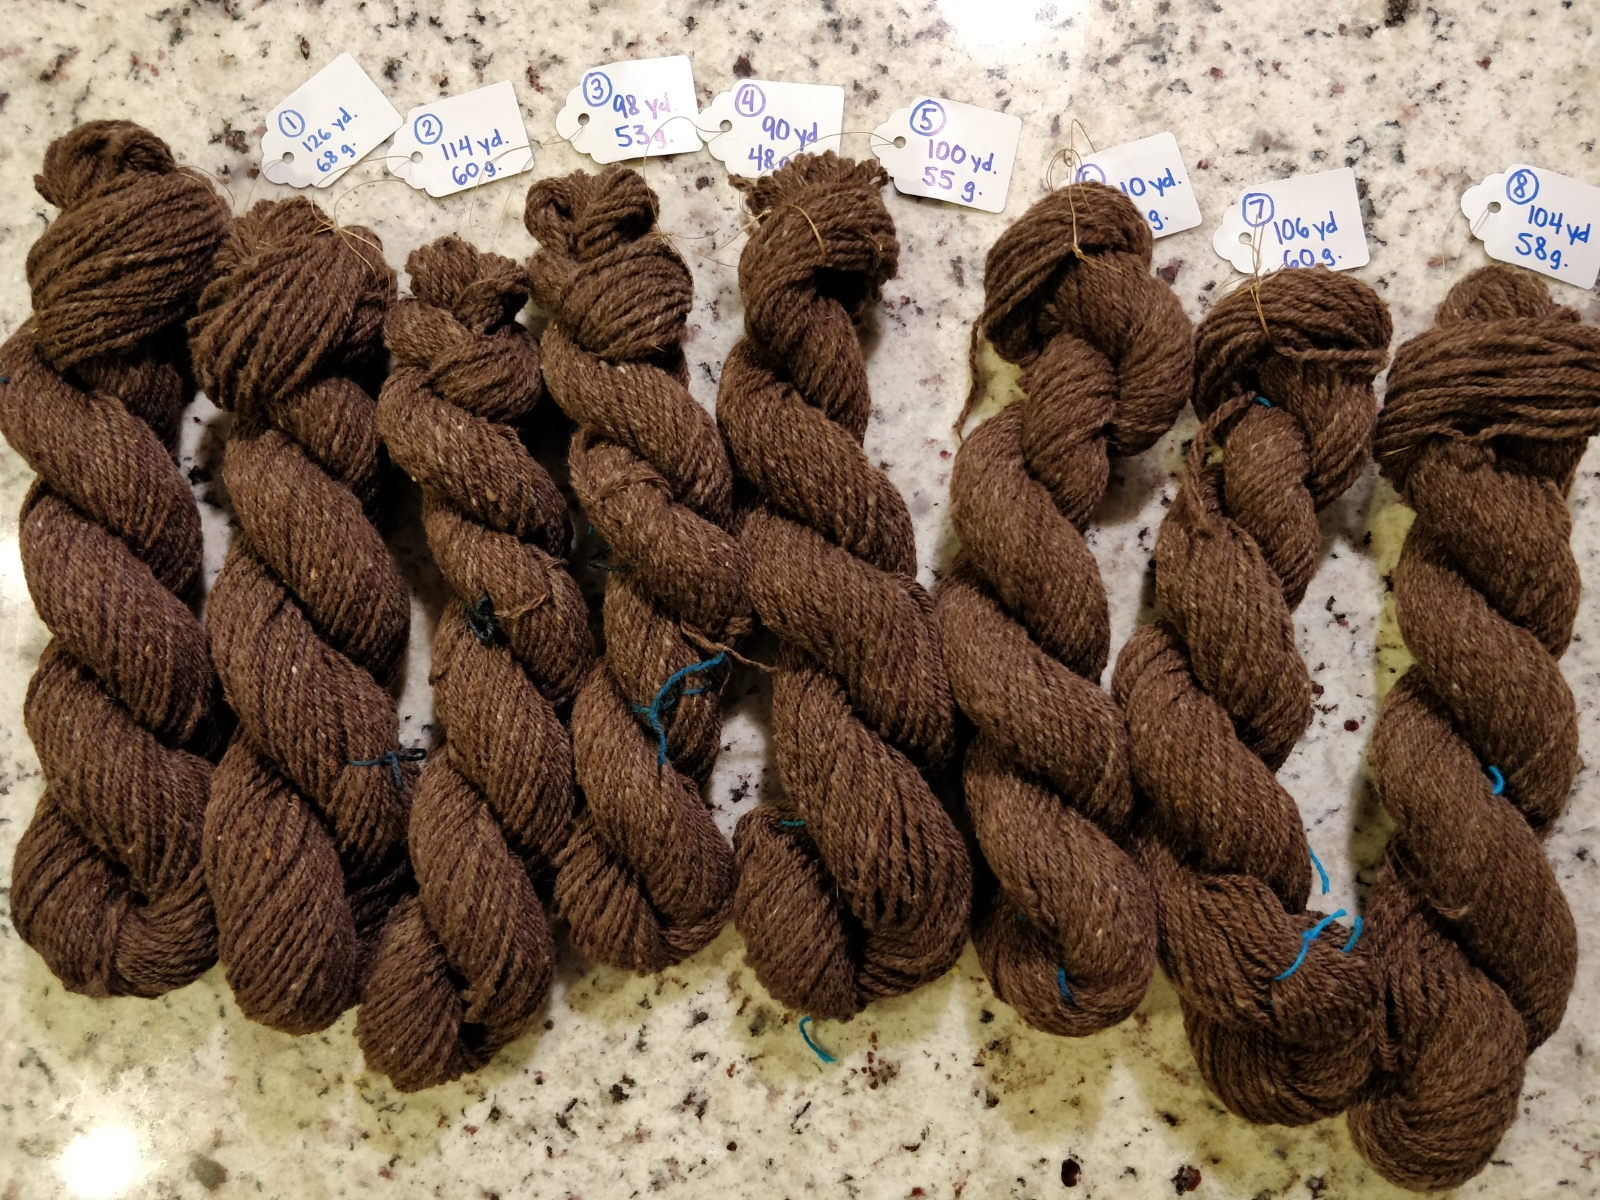 Eight hanks of brown three-ply yarn sit on a stone countertop.